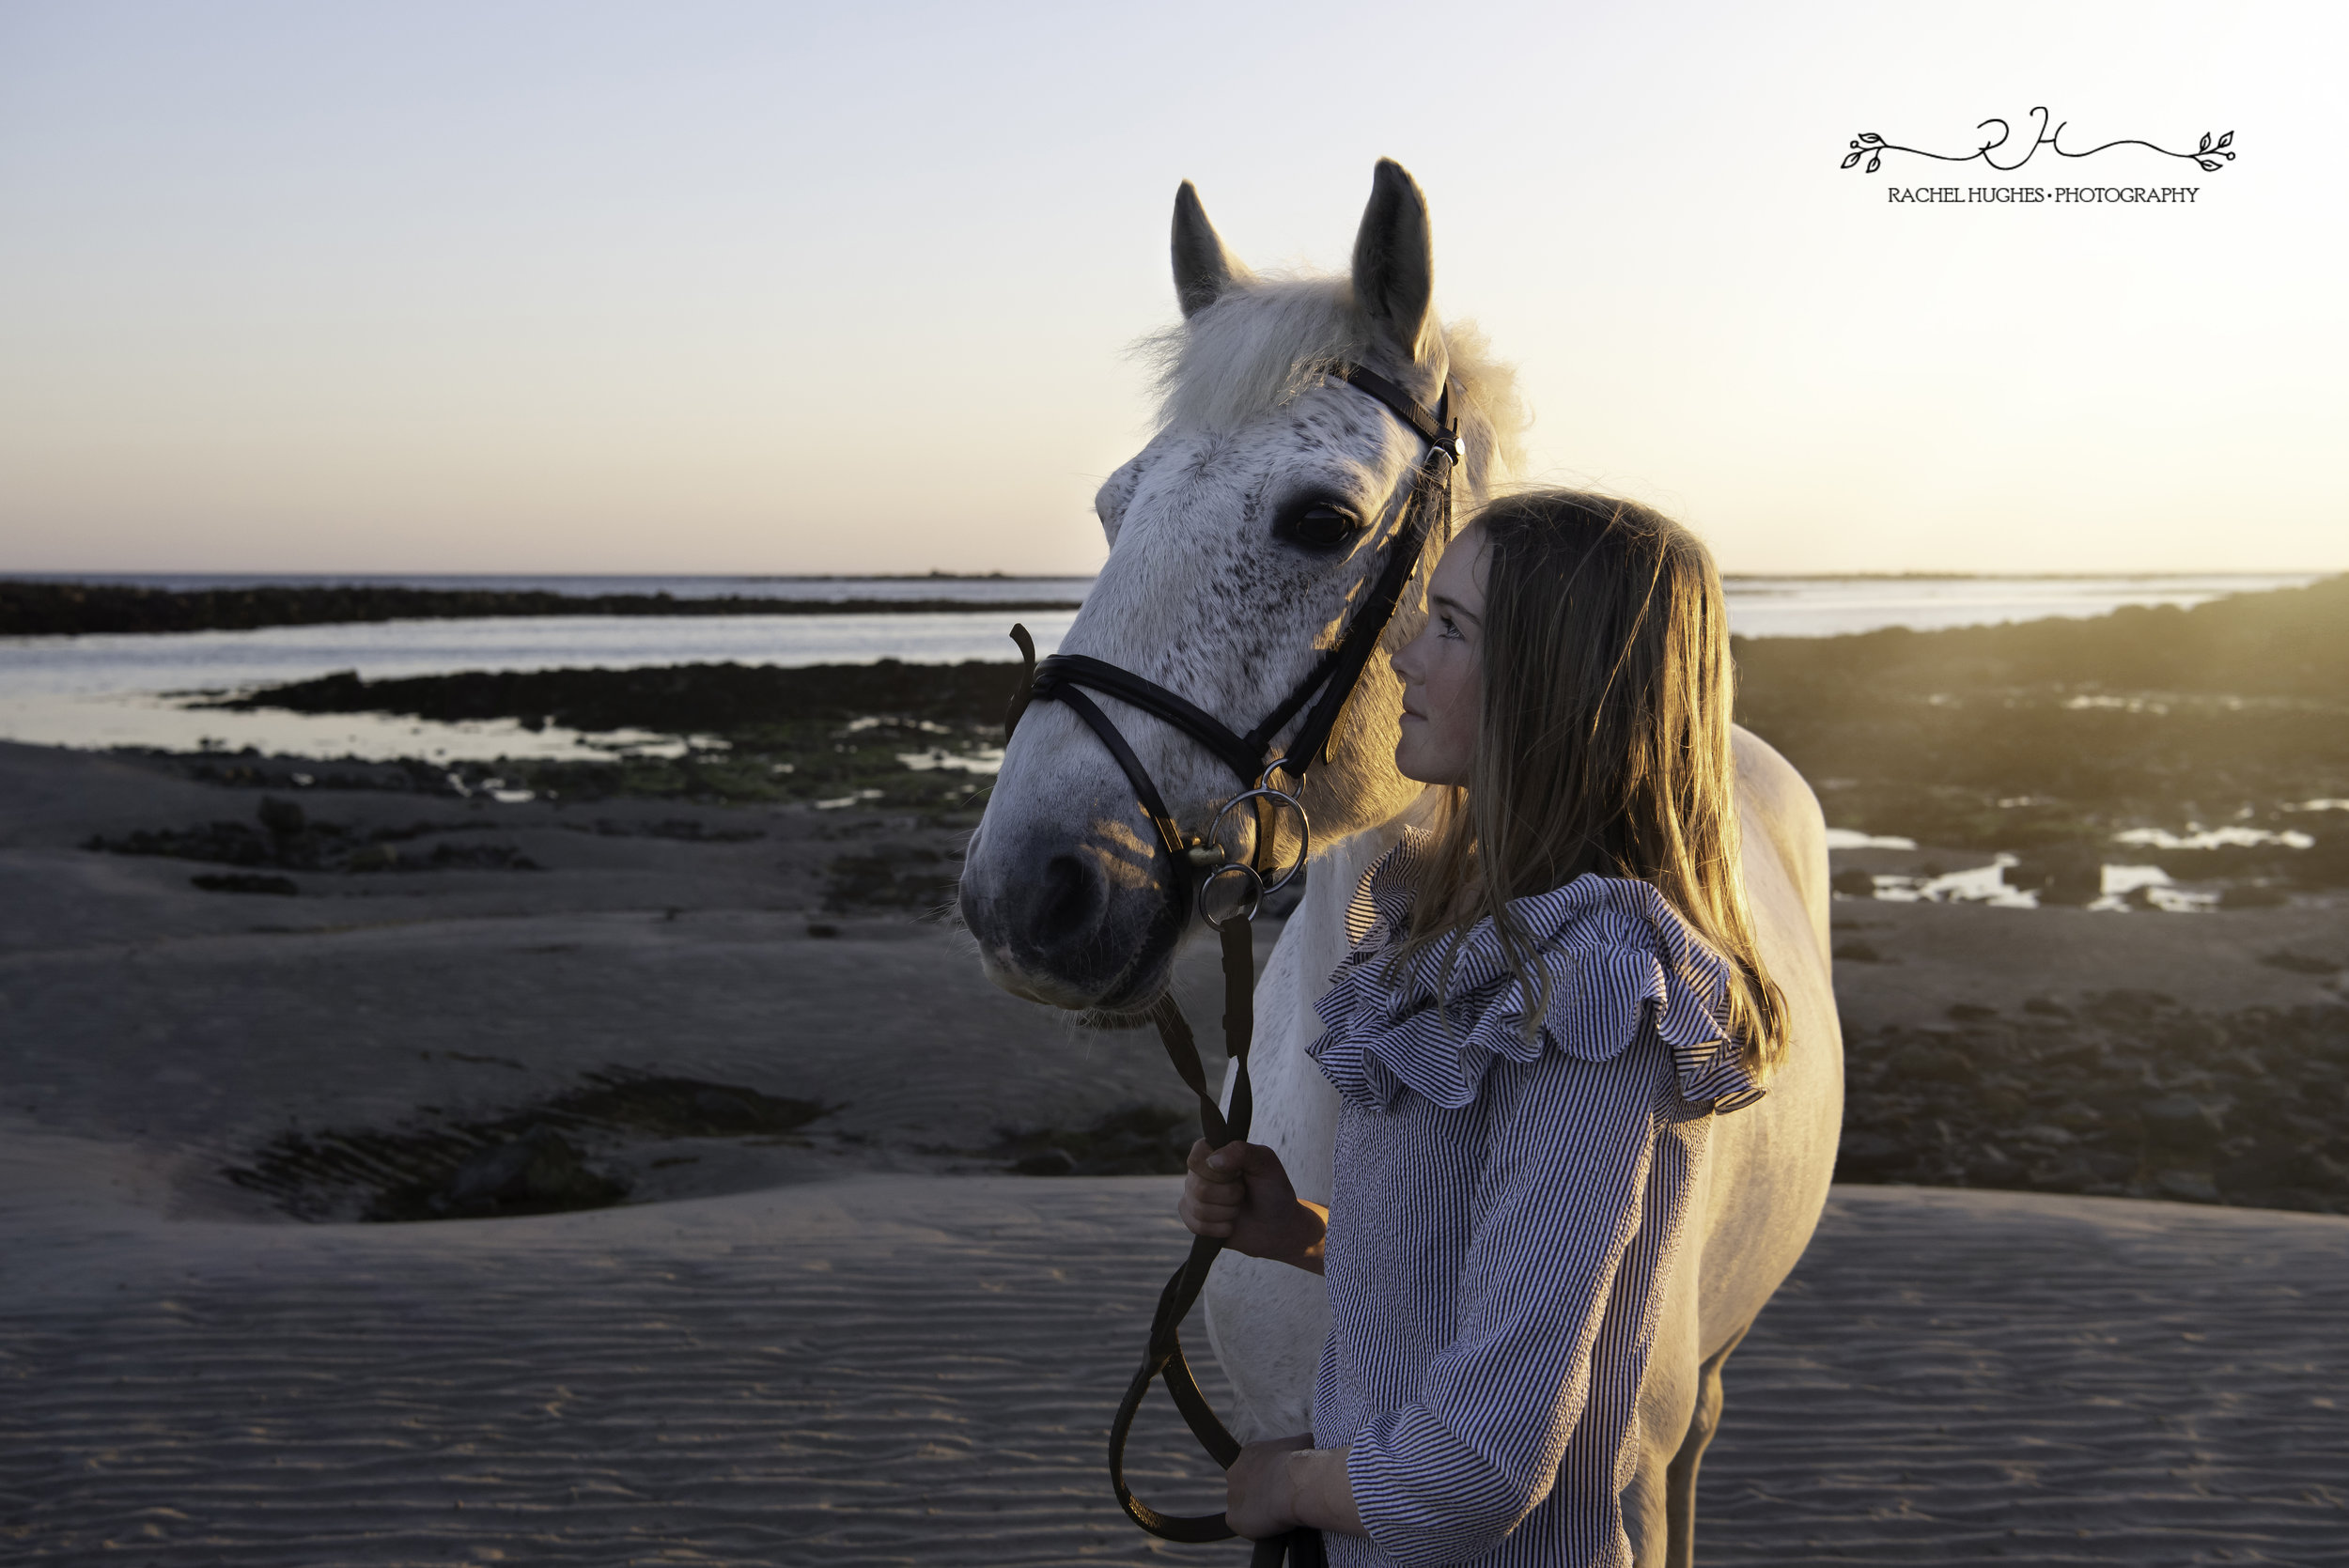 Jersey photographer -girl gazing at her horse